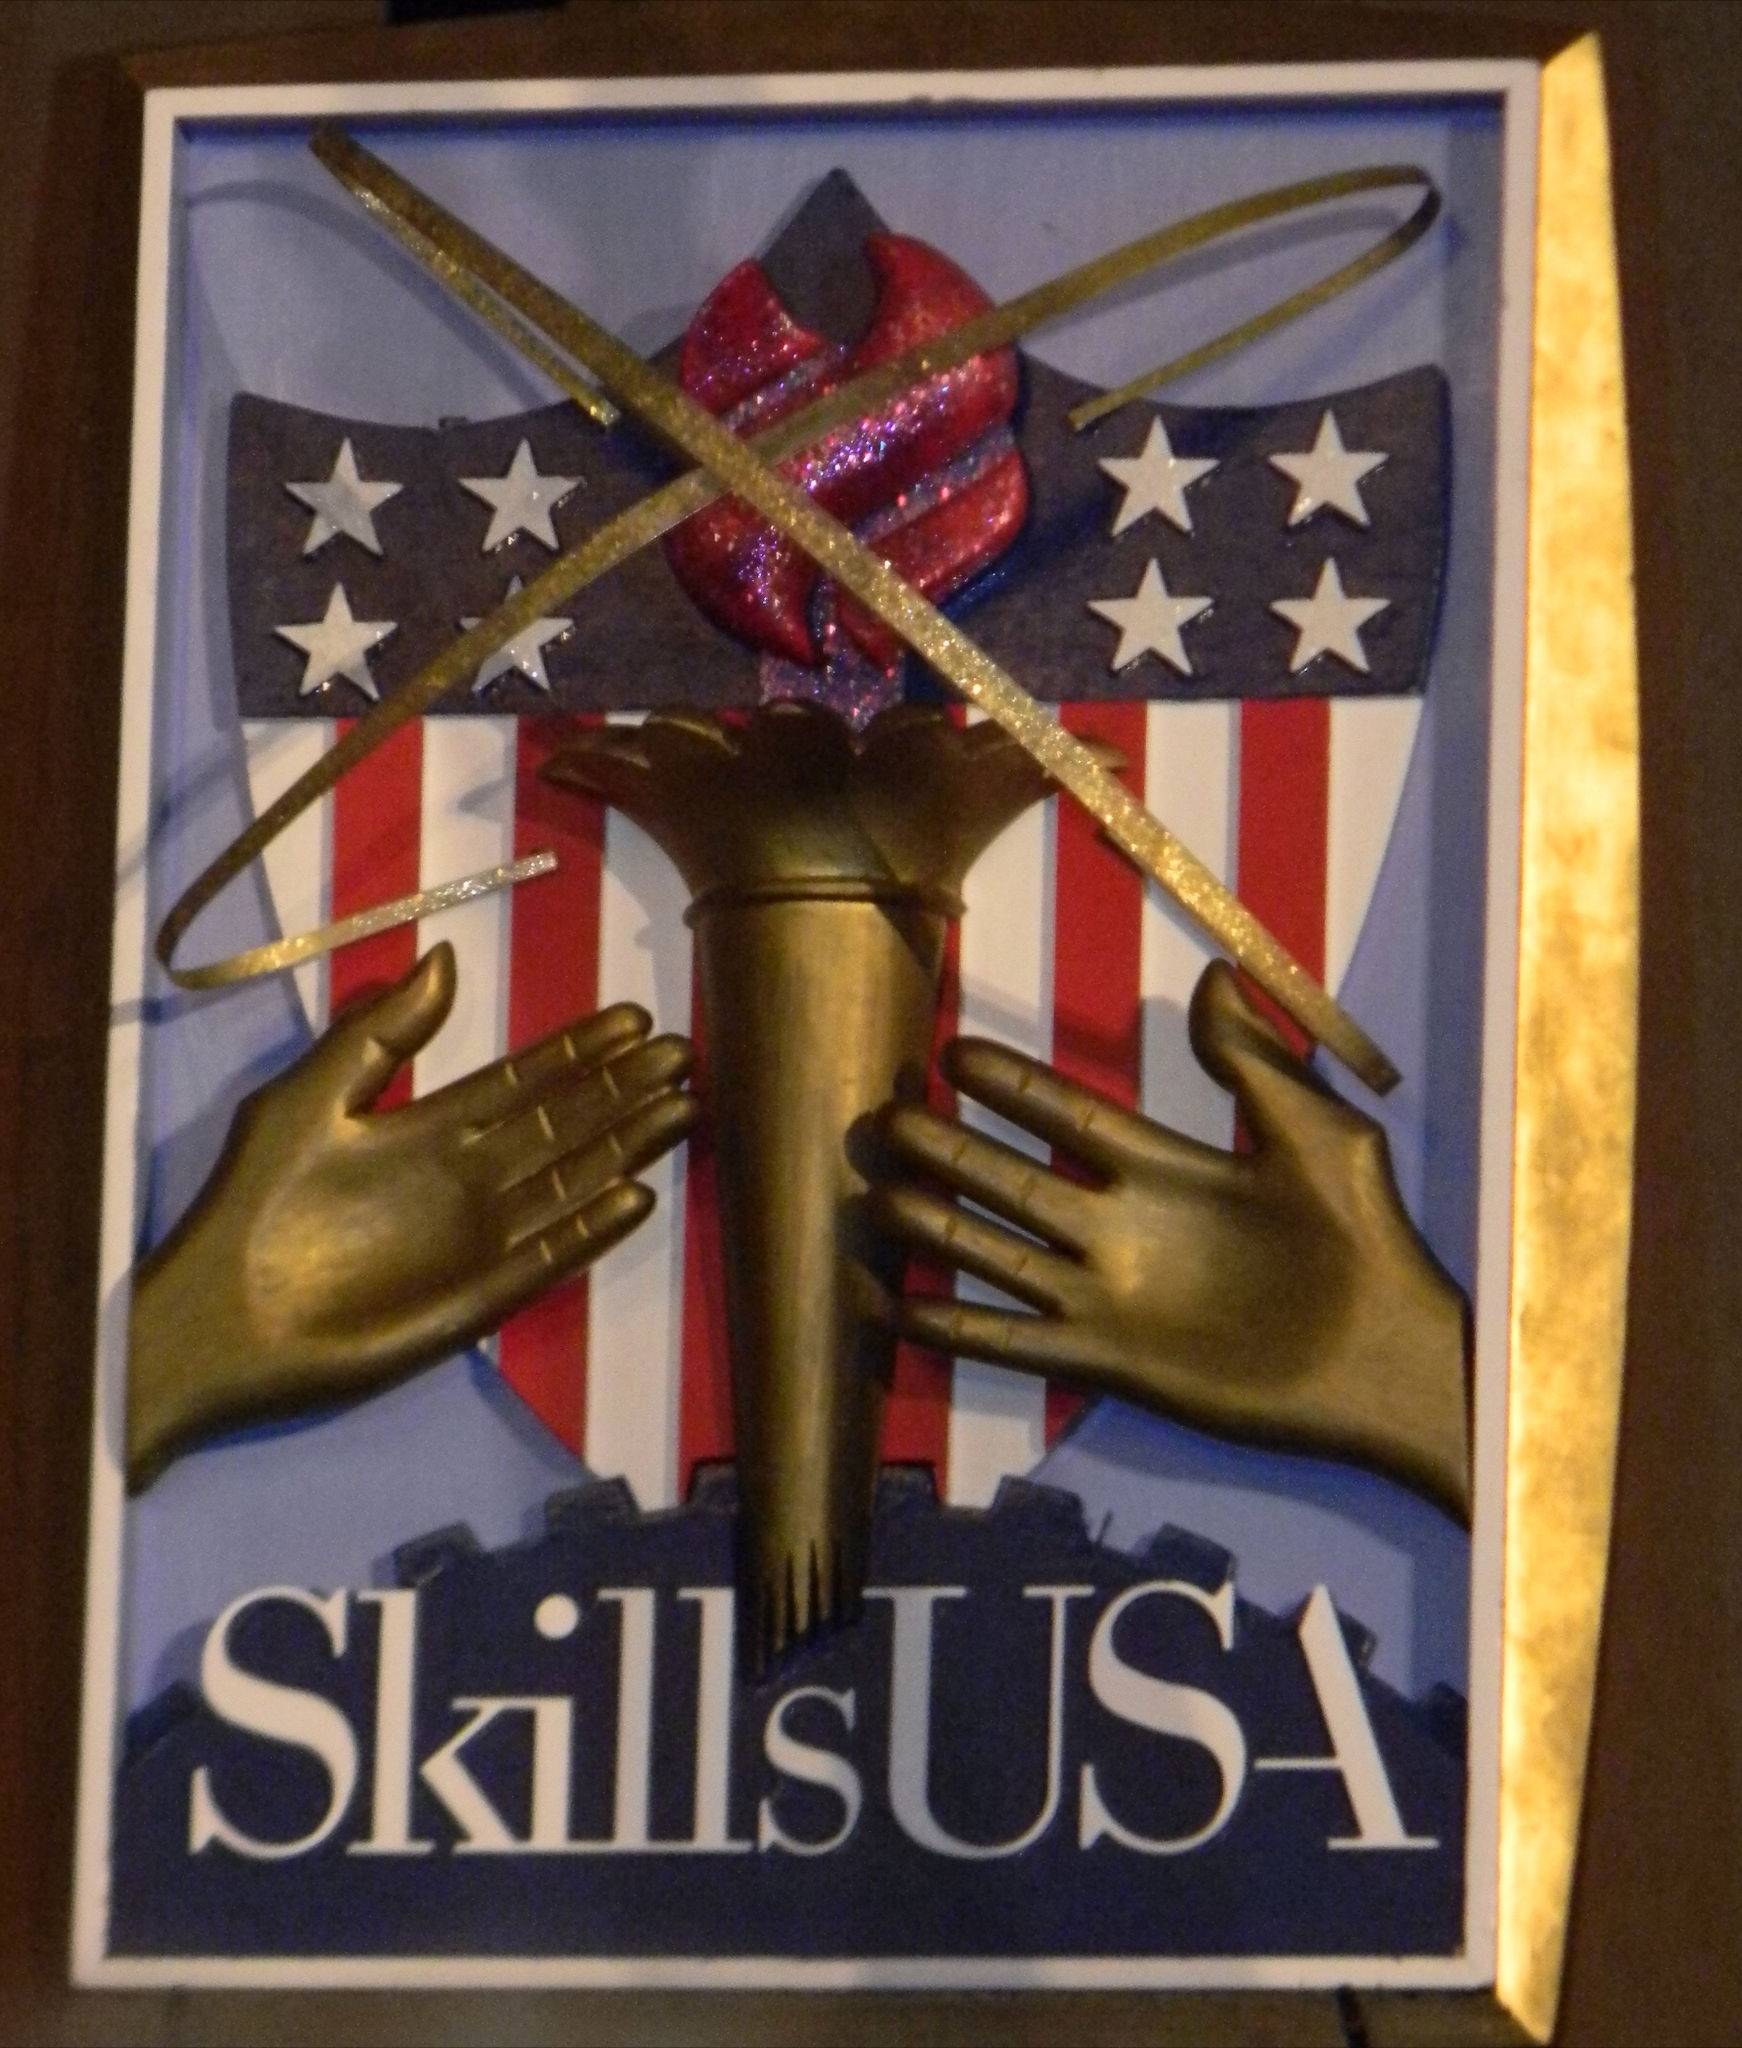 Skillsusa 2012 Part 2 Early Childhood And Youth